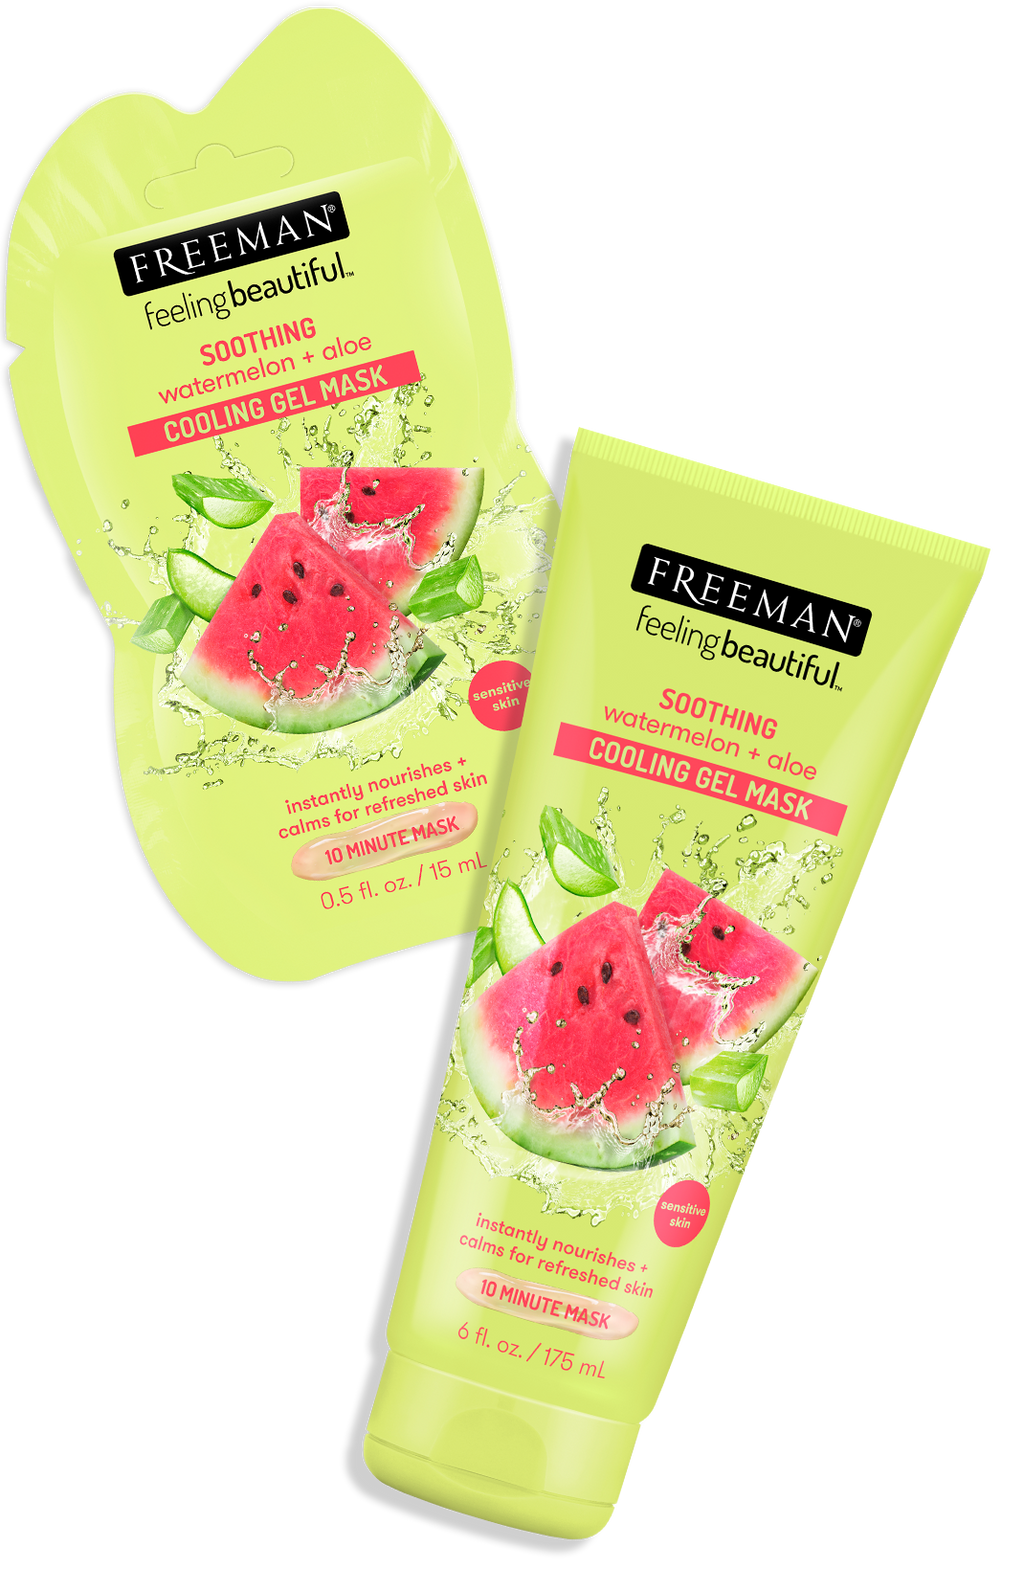 Freeman Soothing Watermelon +aloe Cooling Gel Mask